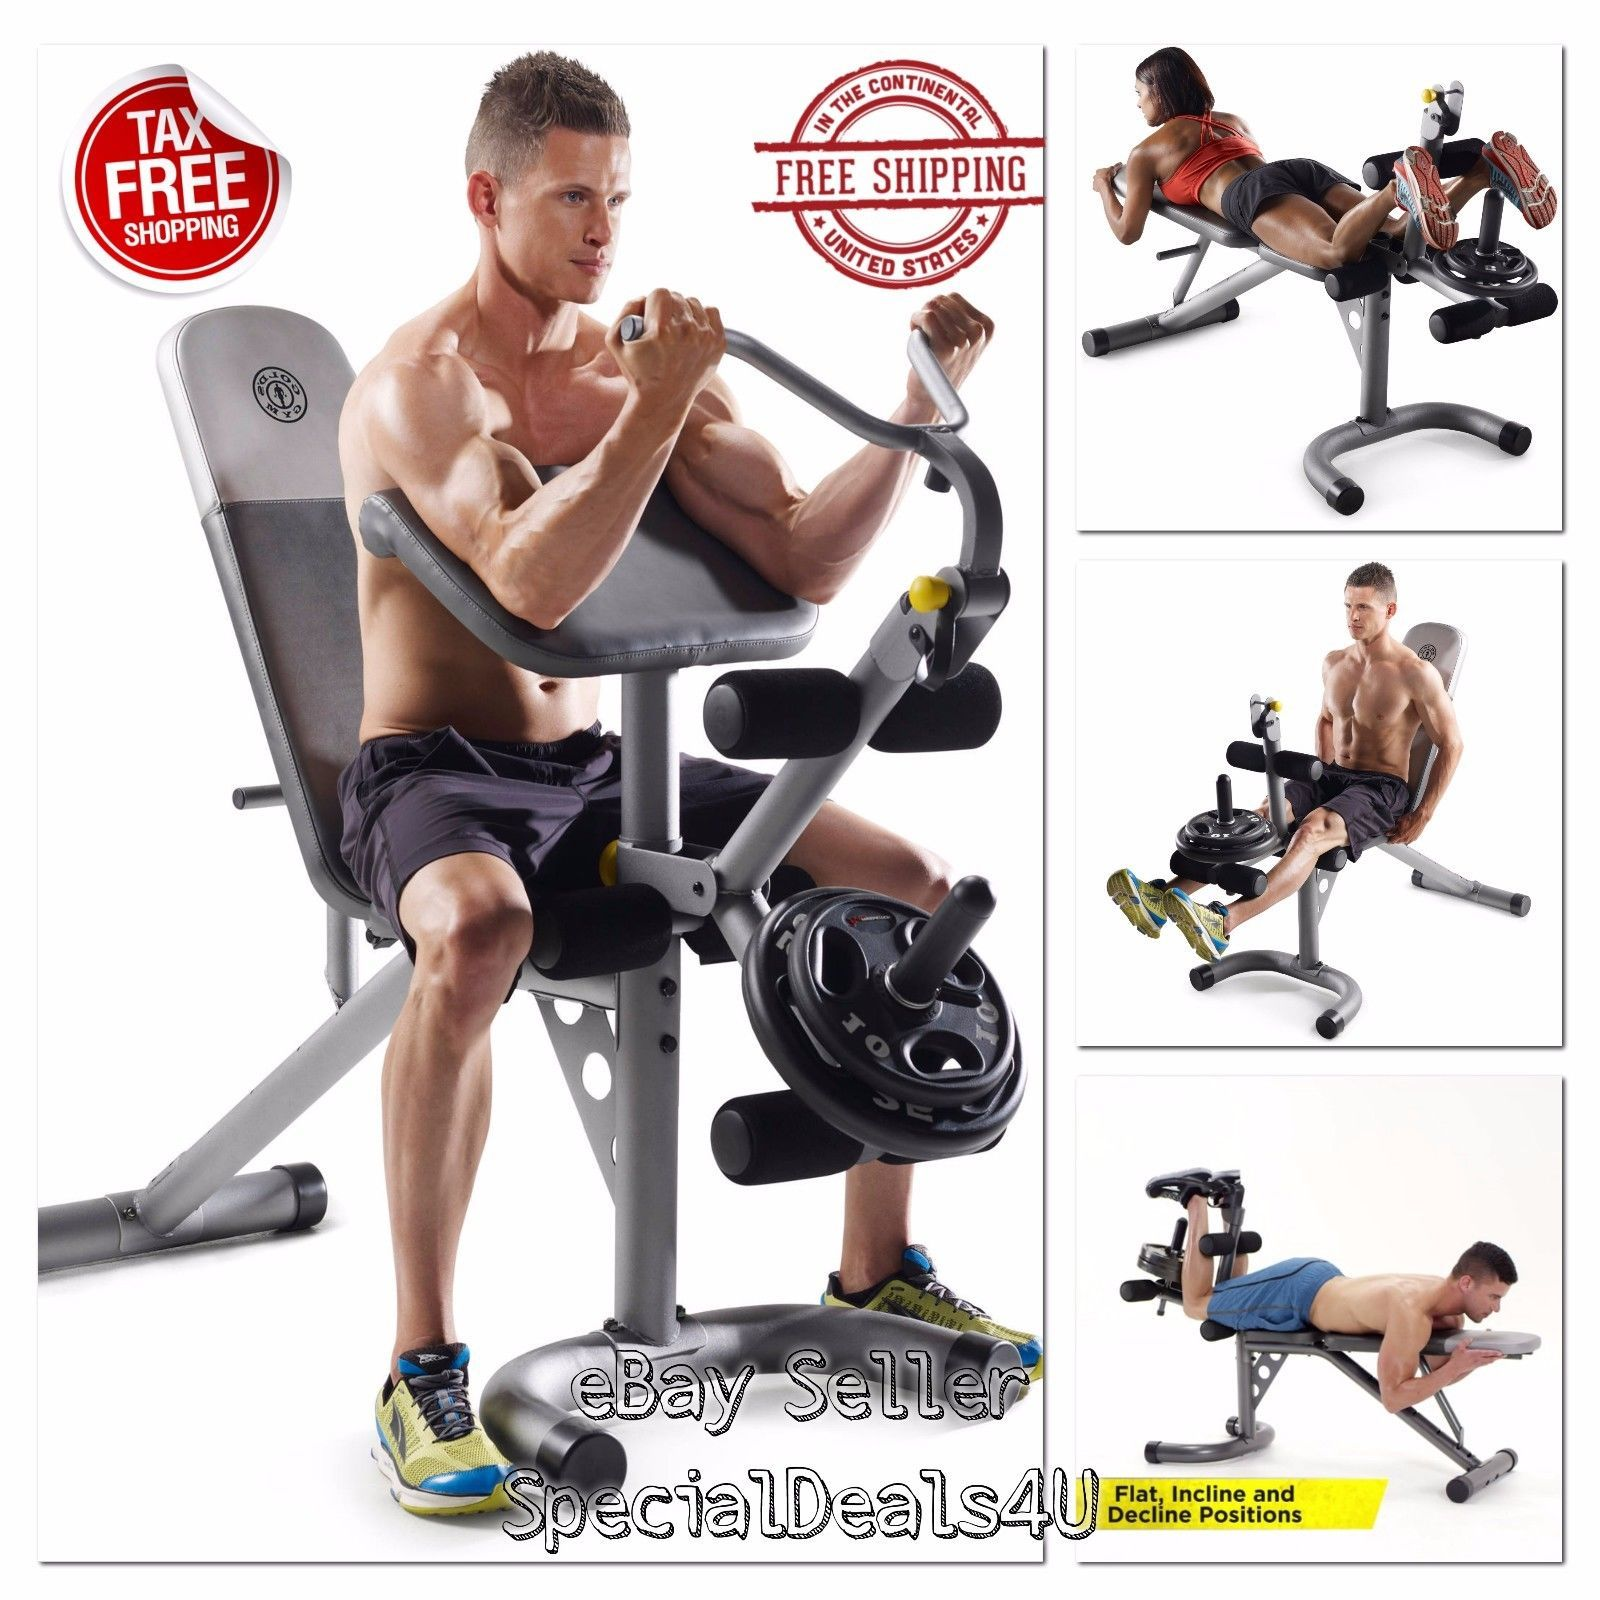 Swell Details About Workout Bench Weight Home Gym Fitness Exercise Pdpeps Interior Chair Design Pdpepsorg